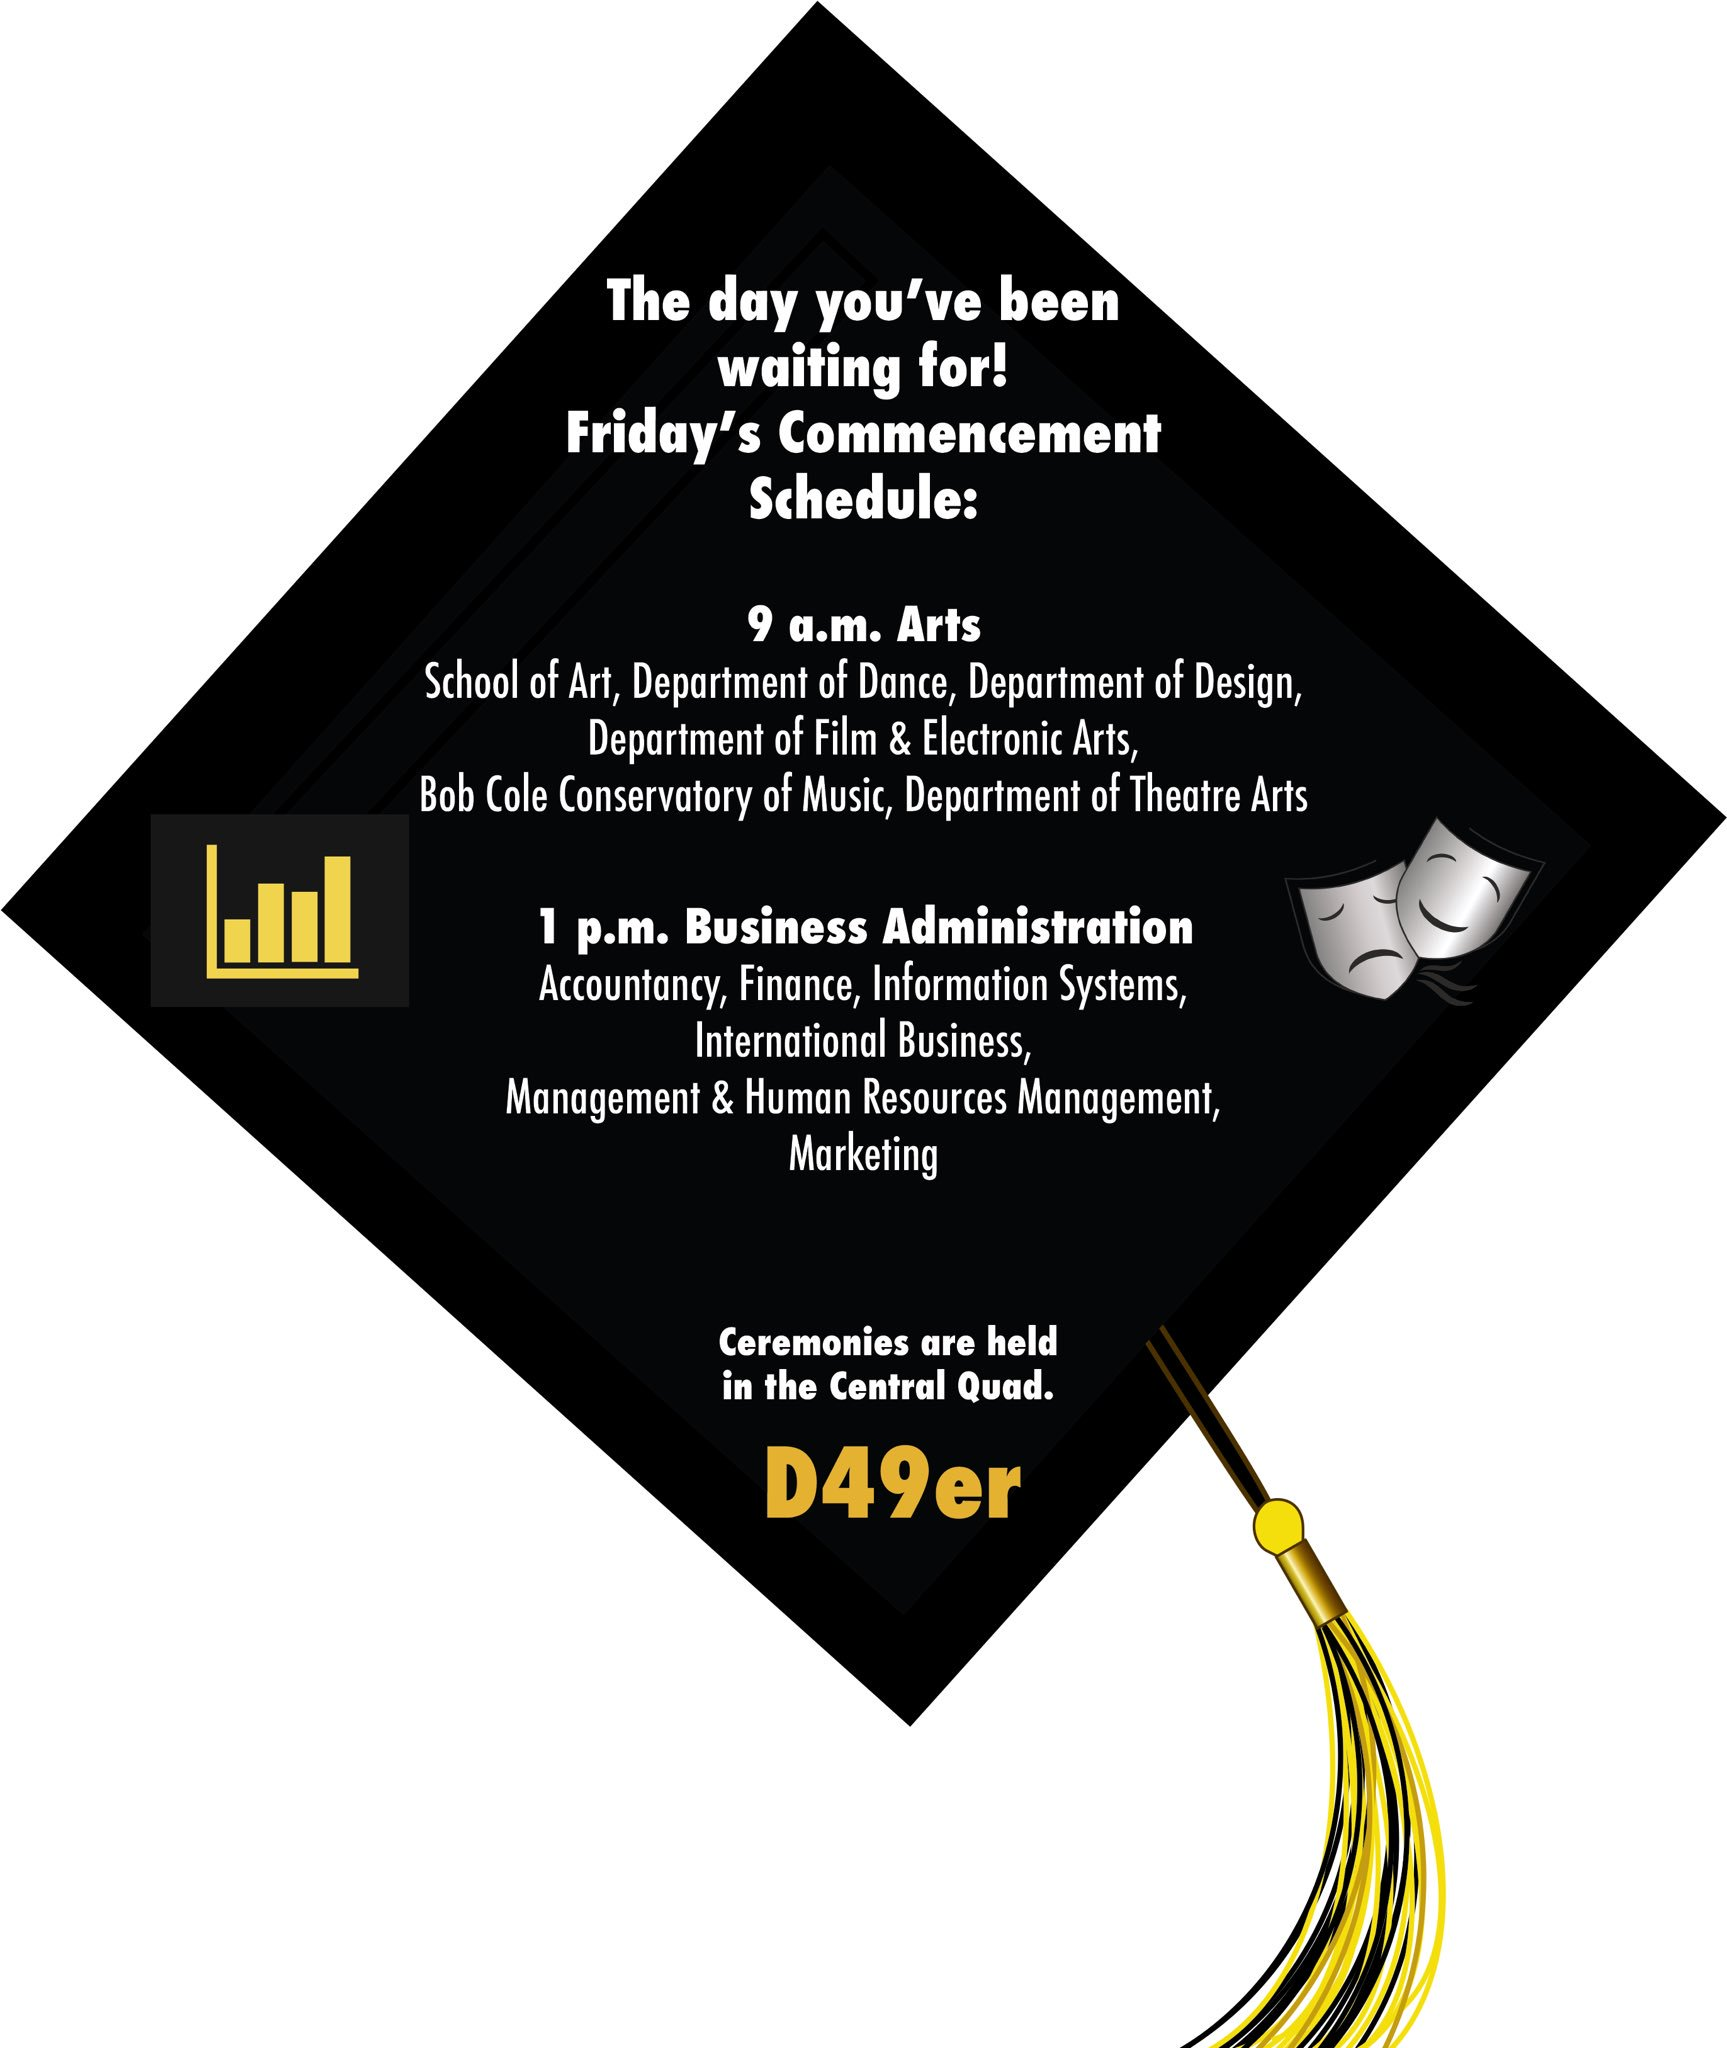 It's almost time!  Don't be late to Friday's @CSULB commencement ceremonies! #CSULB #Commencement #Graduation #Classof2017 https://t.co/AM9xAad9sC